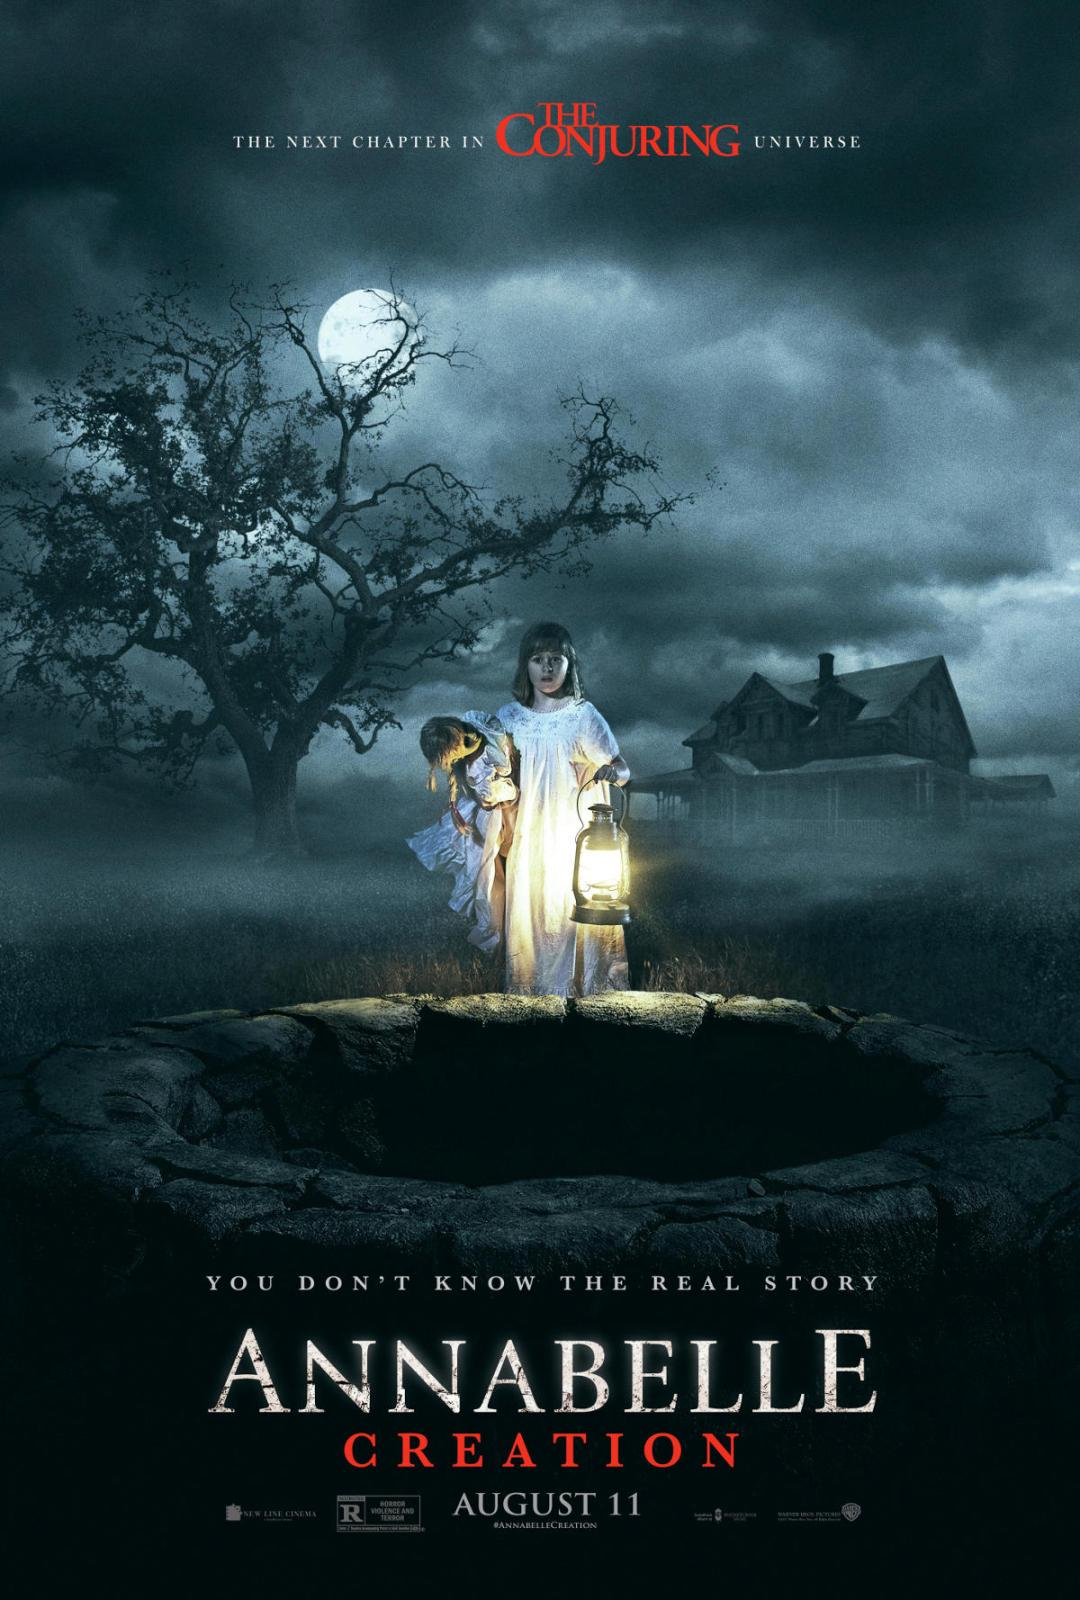 A New Trailer And Poster Are Out For 'Annabelle: Creation'